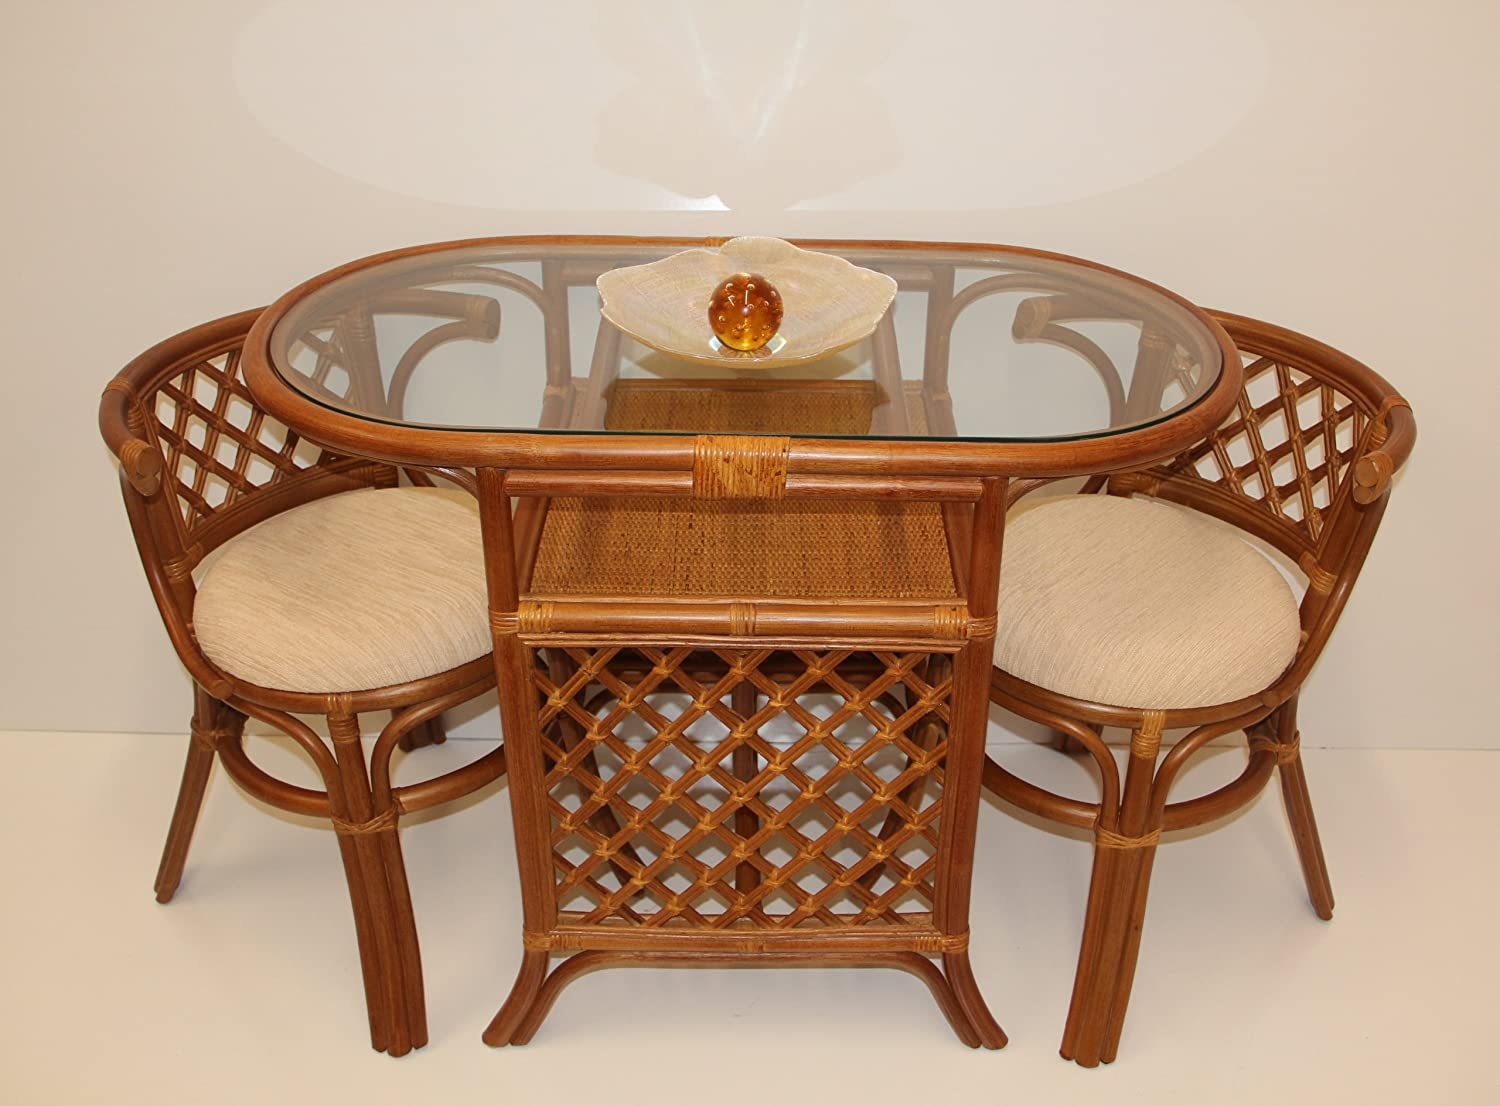 compact dining furniture. Amazon.com - Borneo Compact Dining SET Table With Glass Top +2 Chairs Colonial Handmade Natural Wicker Rattan Furniture \u0026 Chair Sets